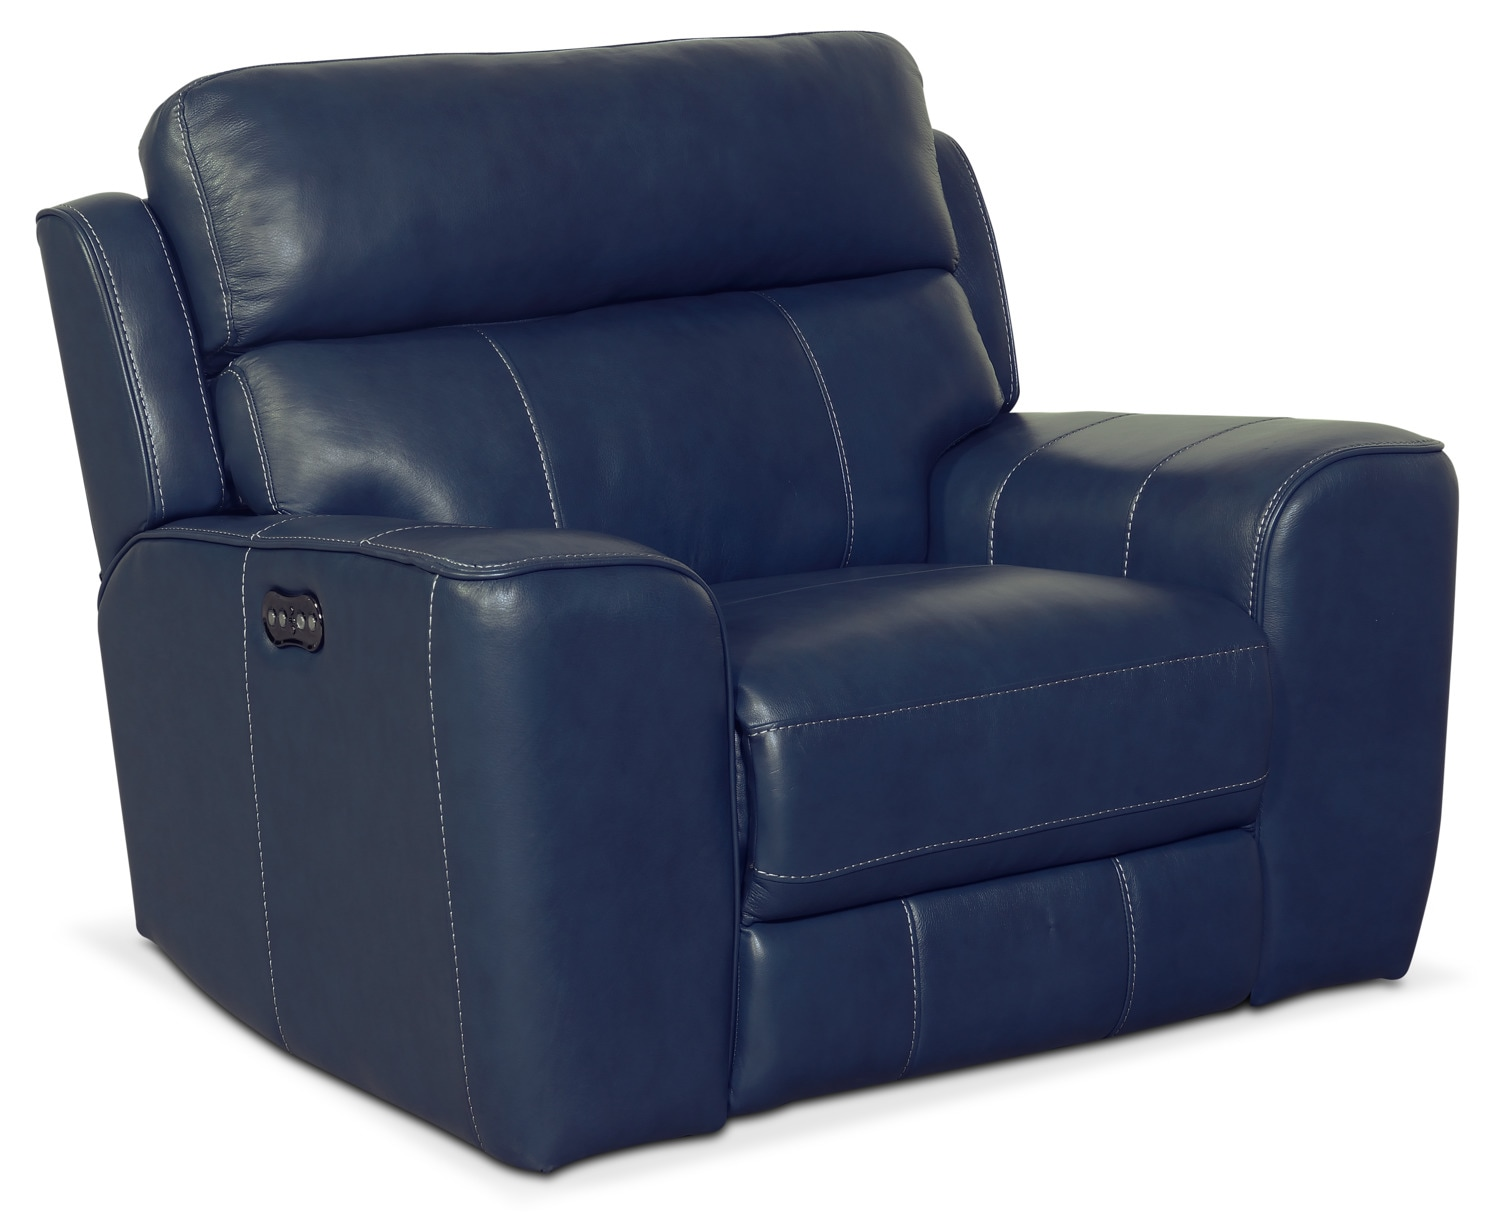 Living Room Furniture - Newport Power Recliner - Blue